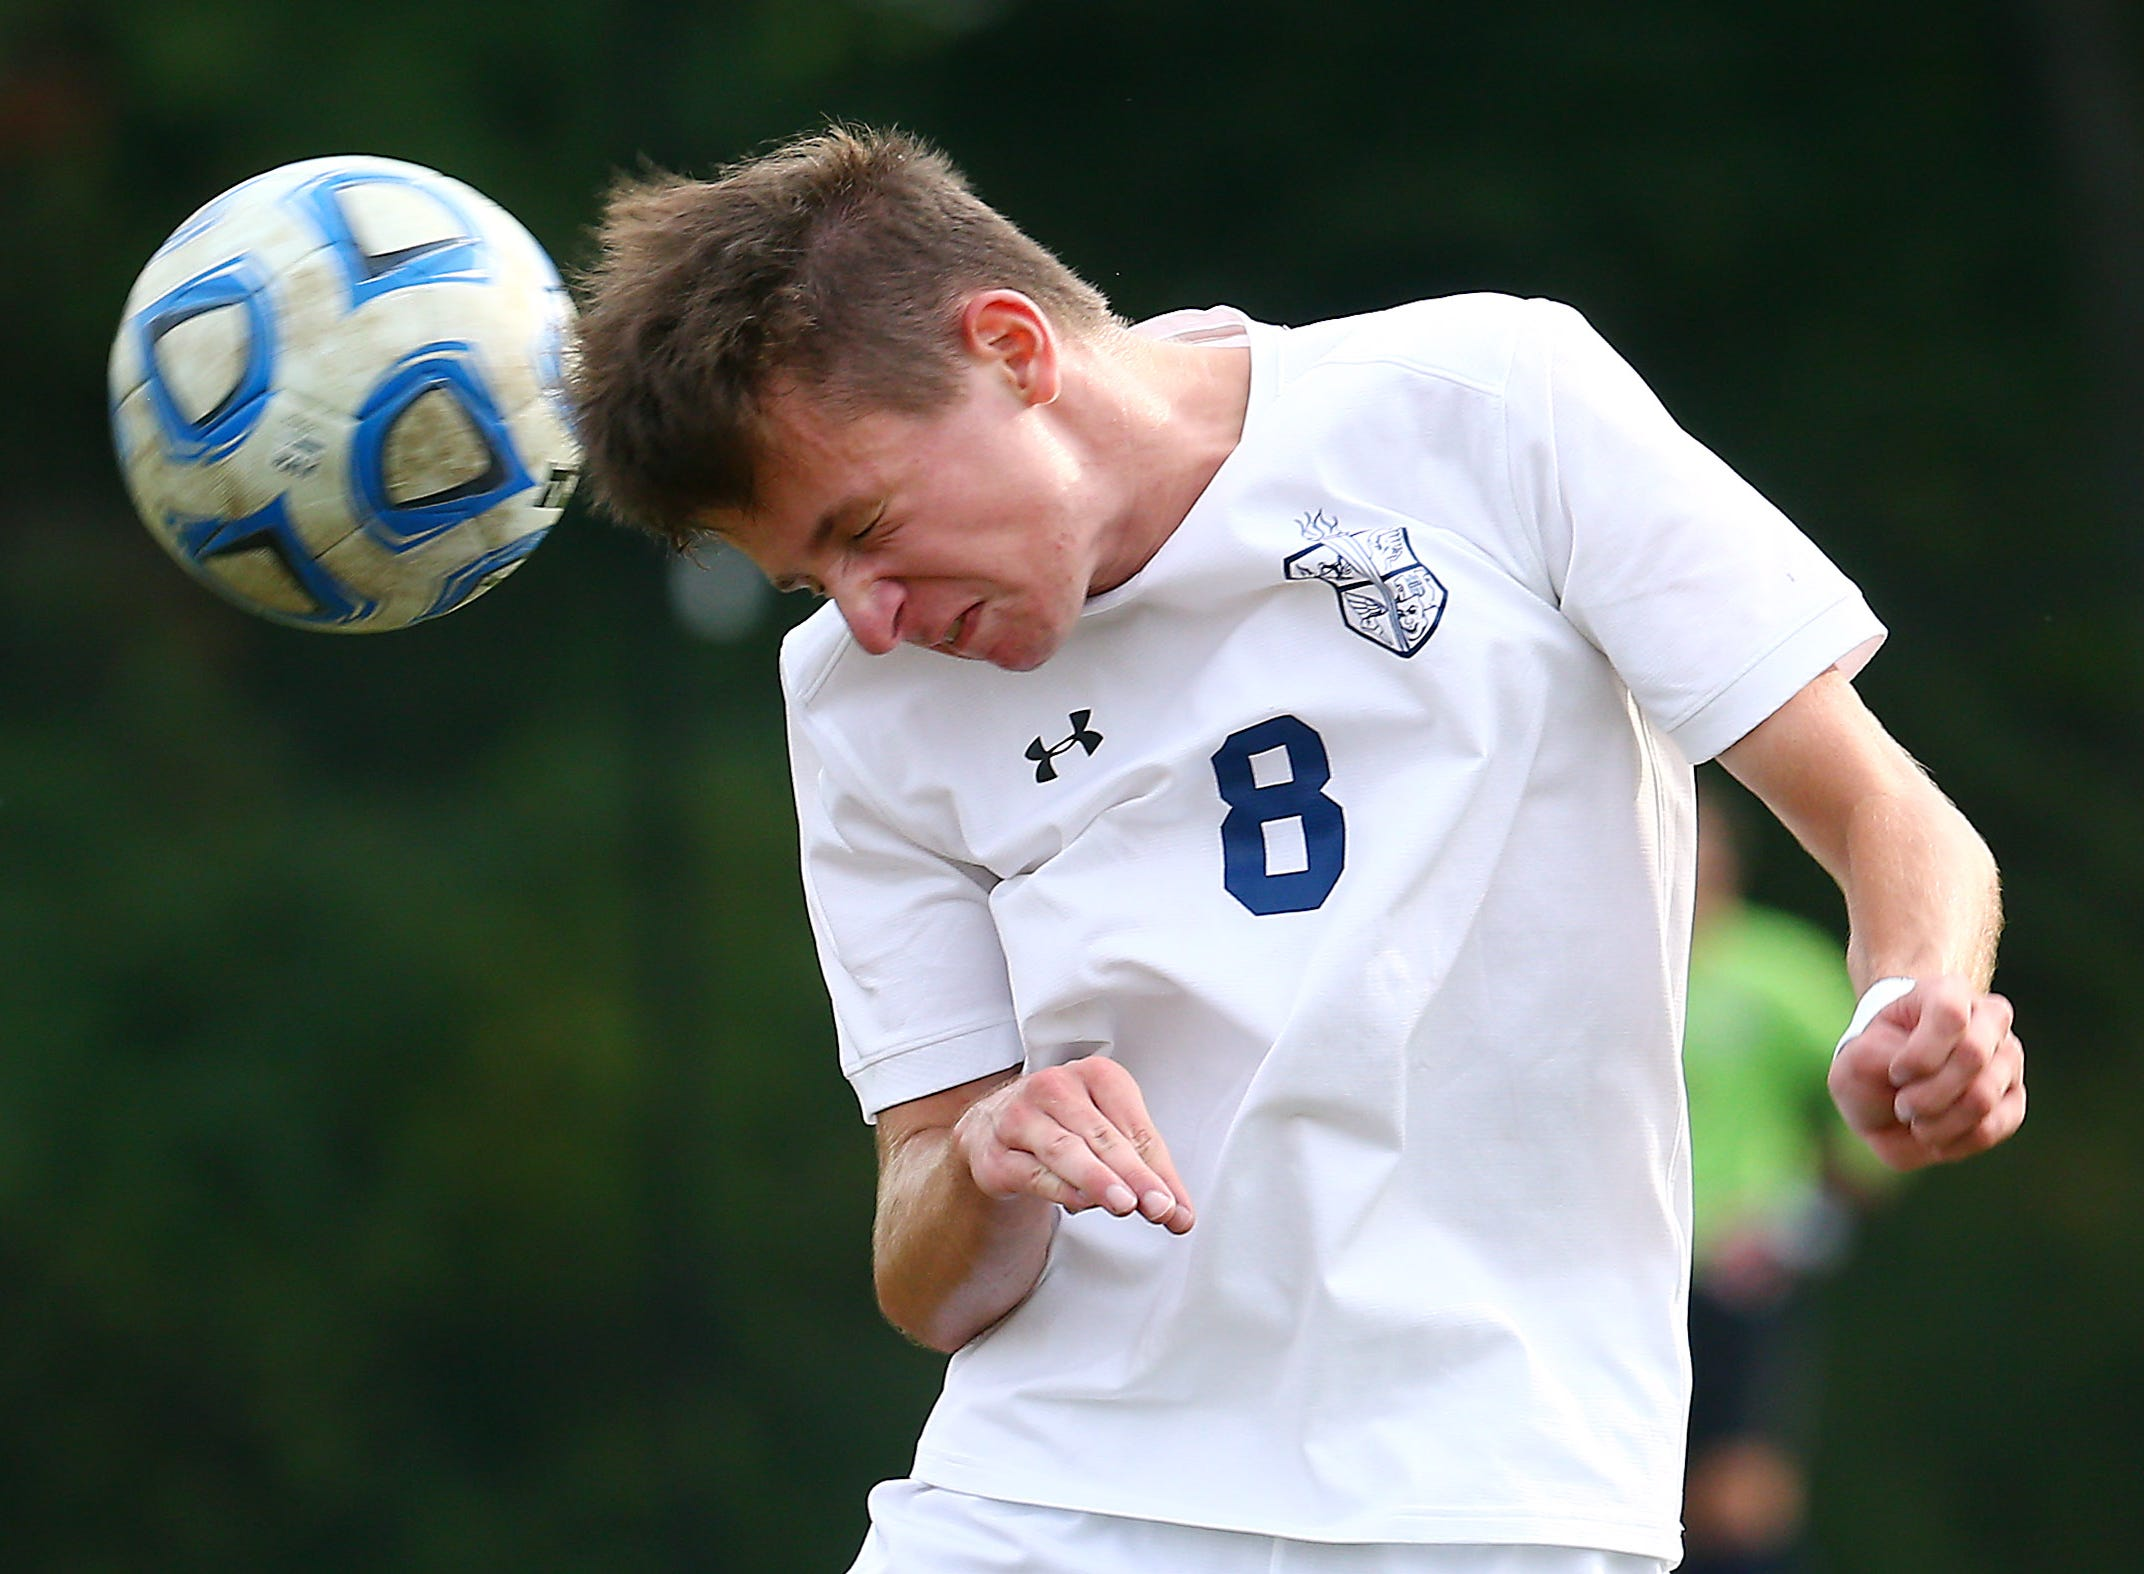 Chatham's Tyler Scmitter heads the ball vs. Mendham during their NJAC-American boys soccer match. October 2, 2018, Mendham, NJ